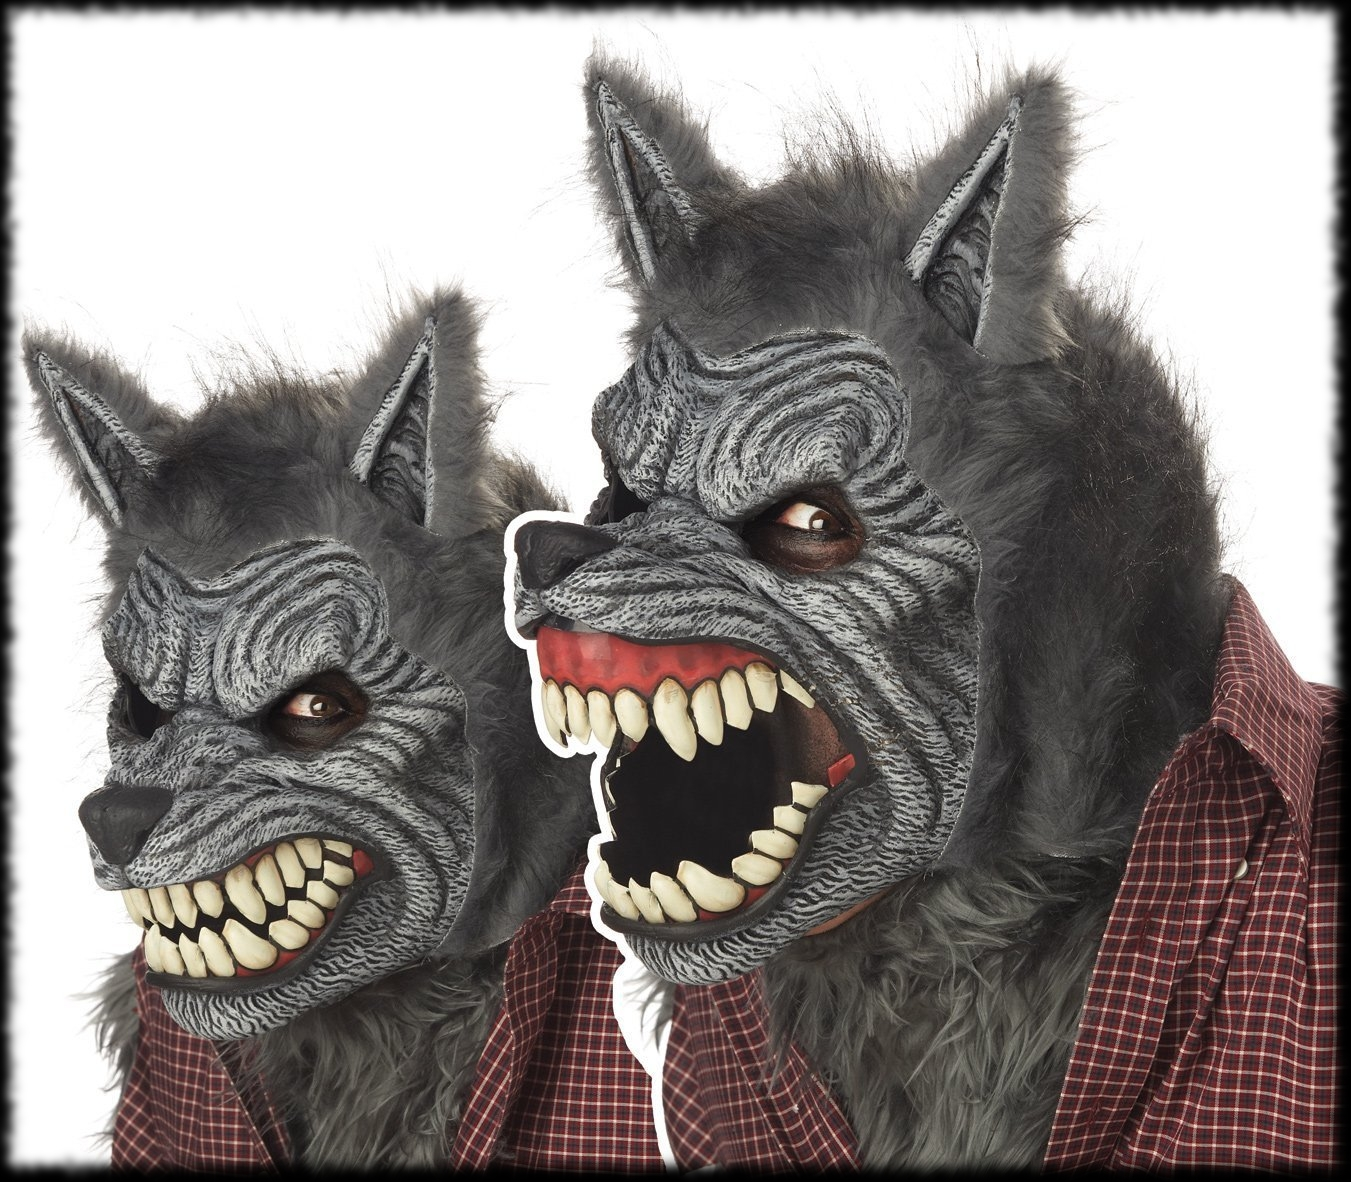 Best Animated Halloween Mask of 2013 Werewolf